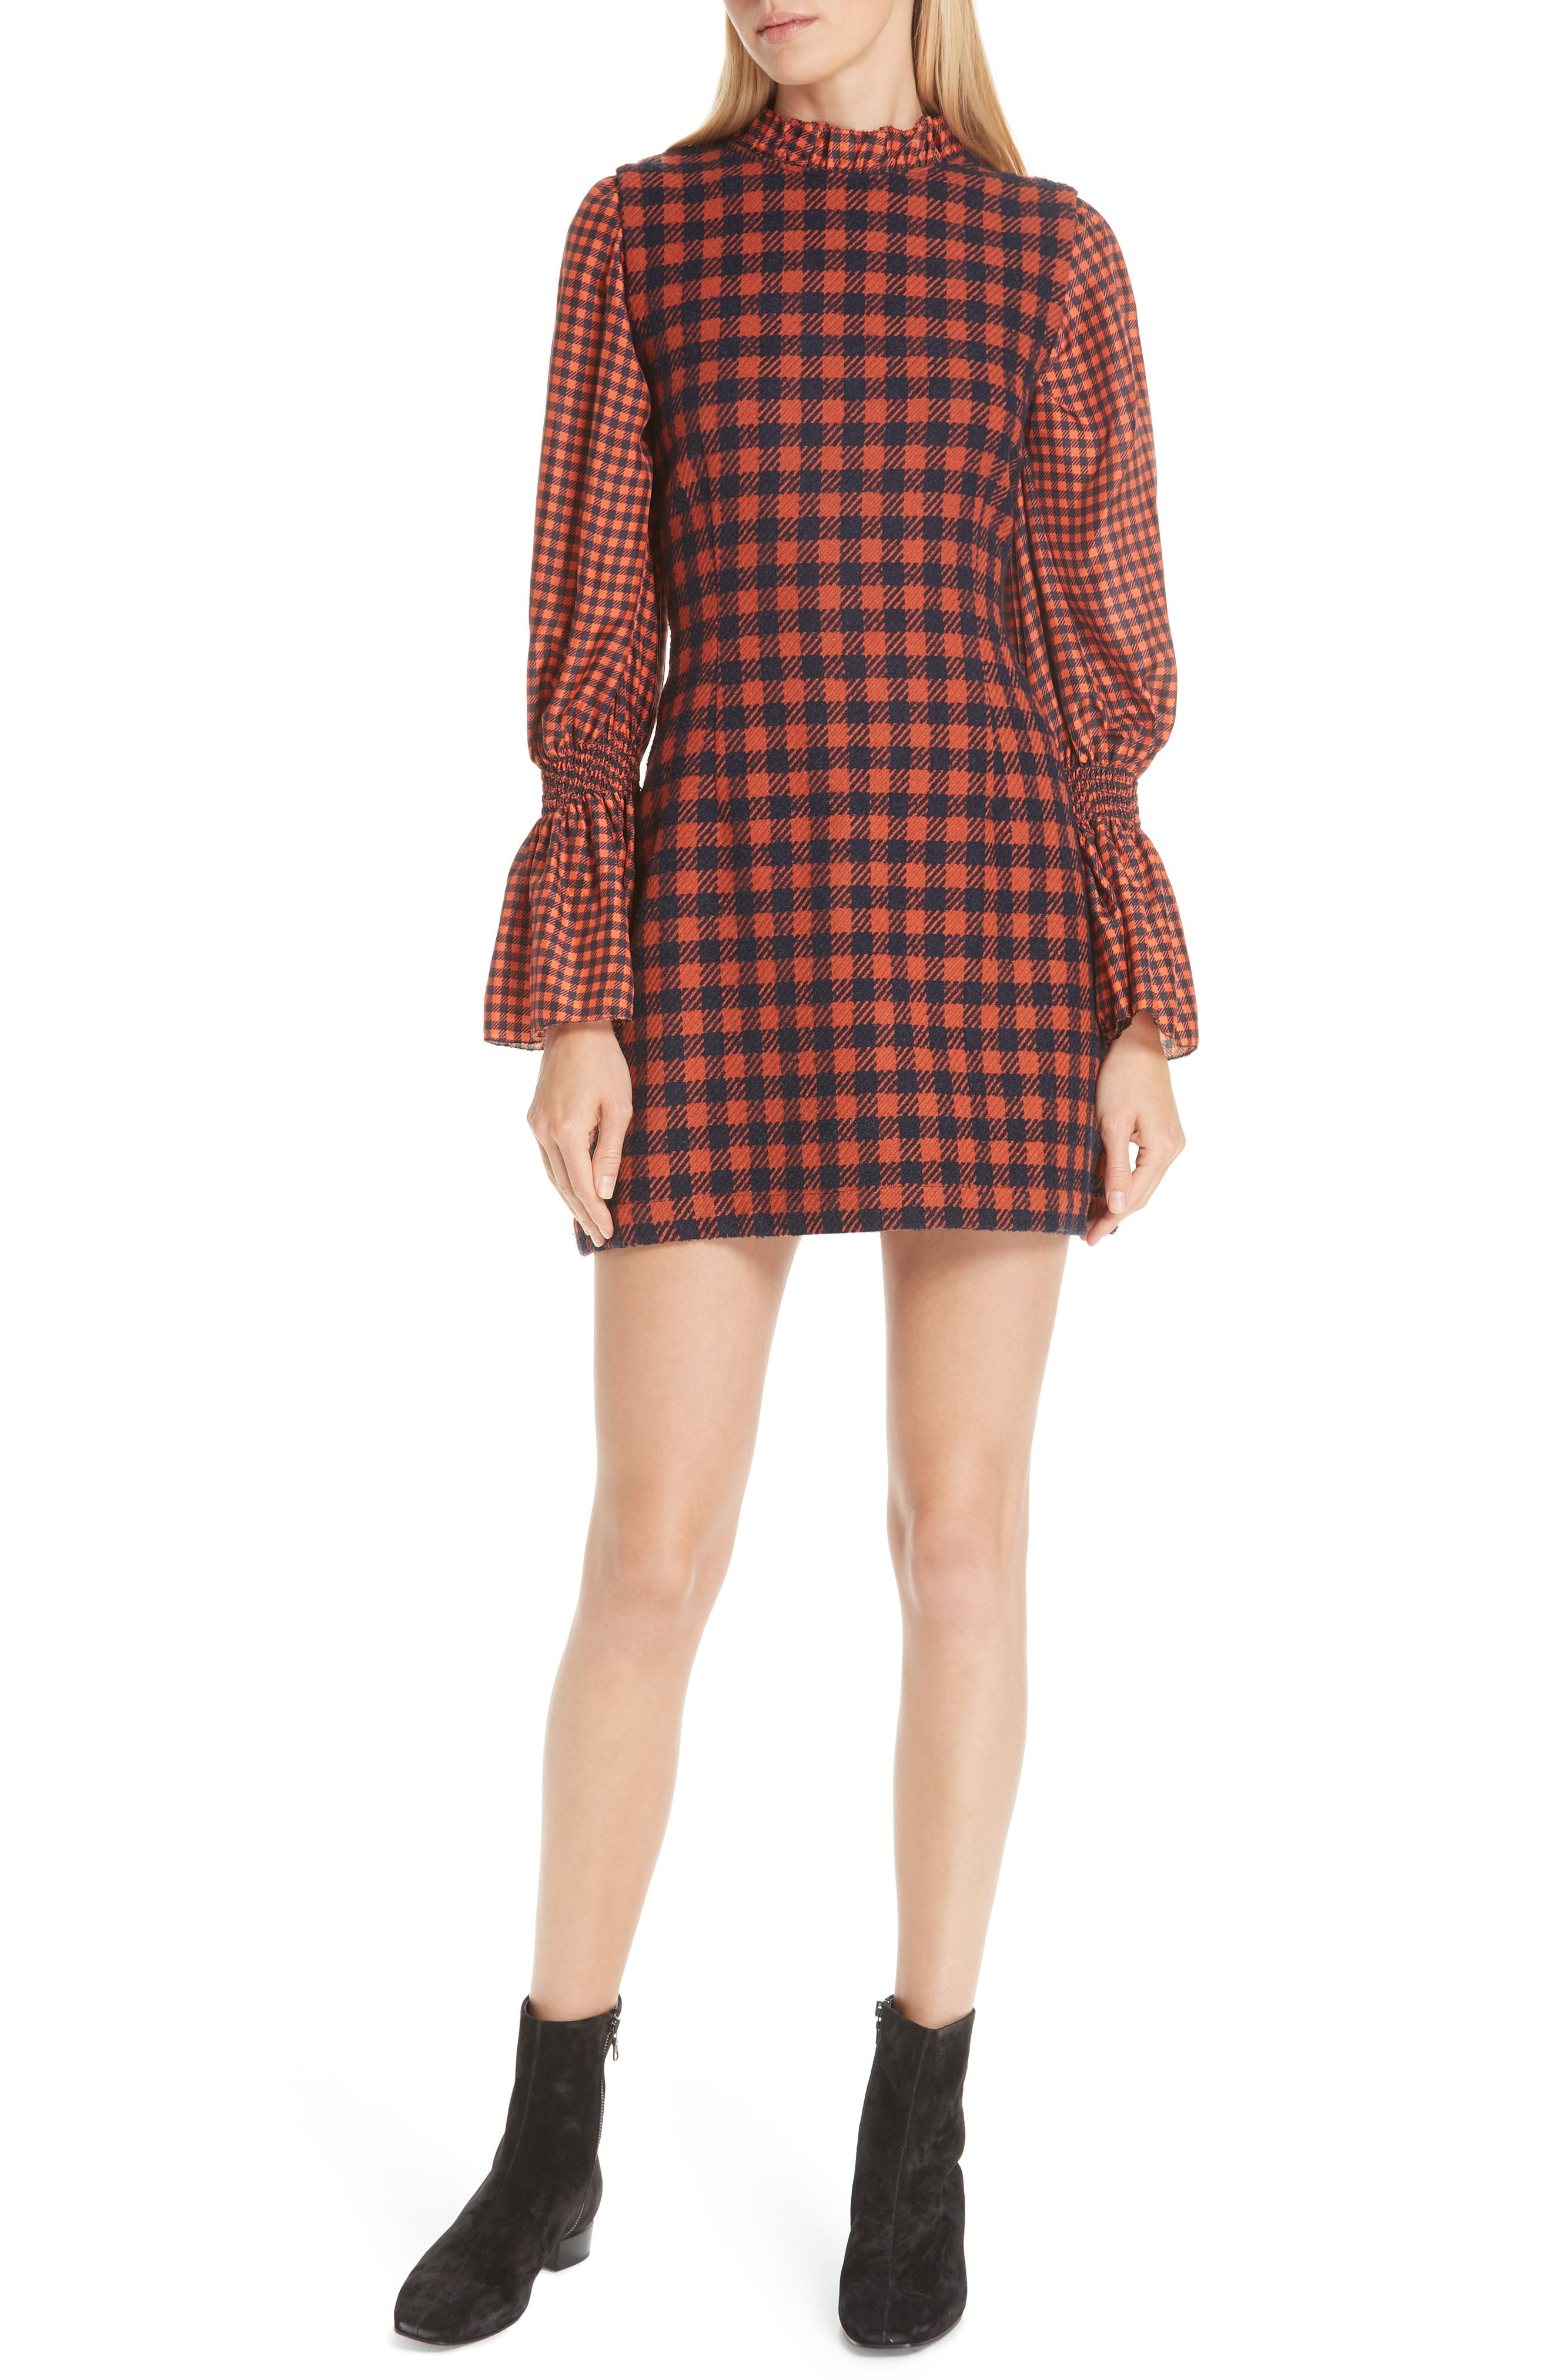 Ethno Pop Checkered Combo Dress,                             Main thumbnail 1, color,                             ORANGE CHECK